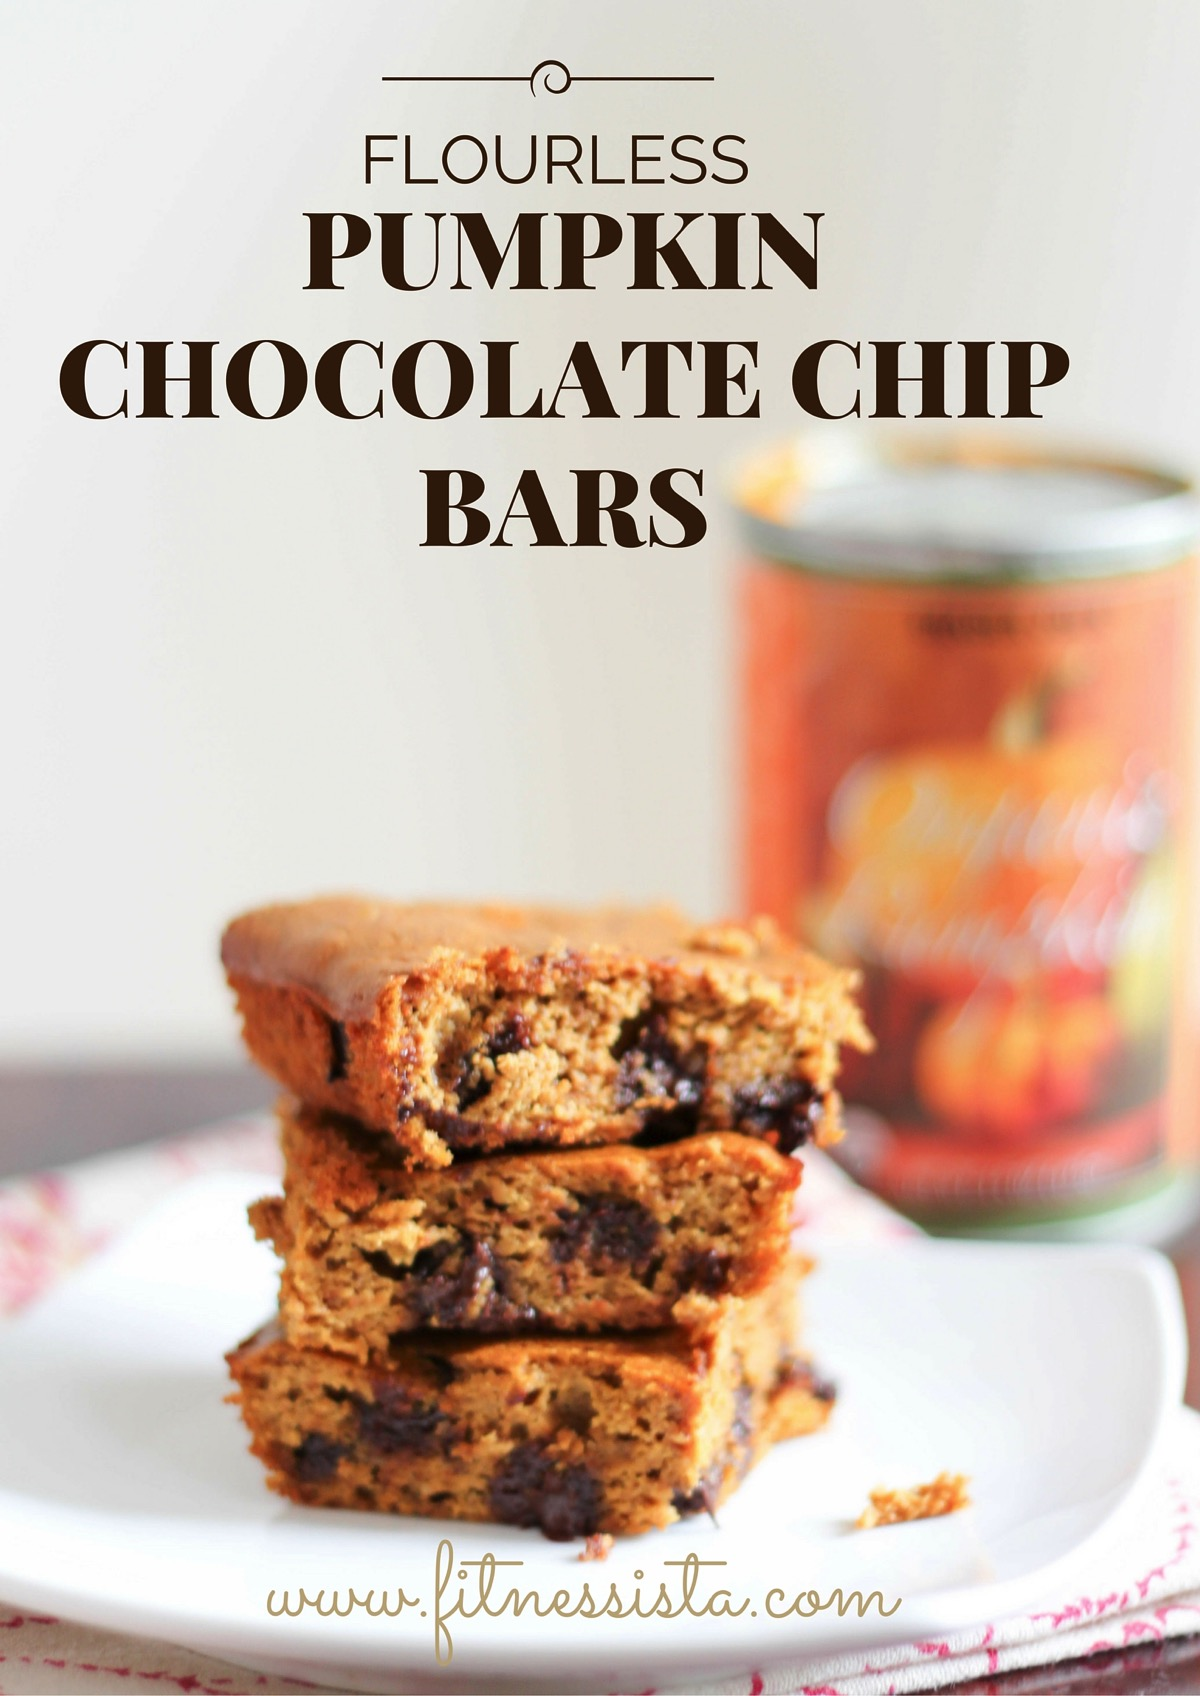 Flourless pumpkin chocolate chip bars are a fall treat packed with nutrients